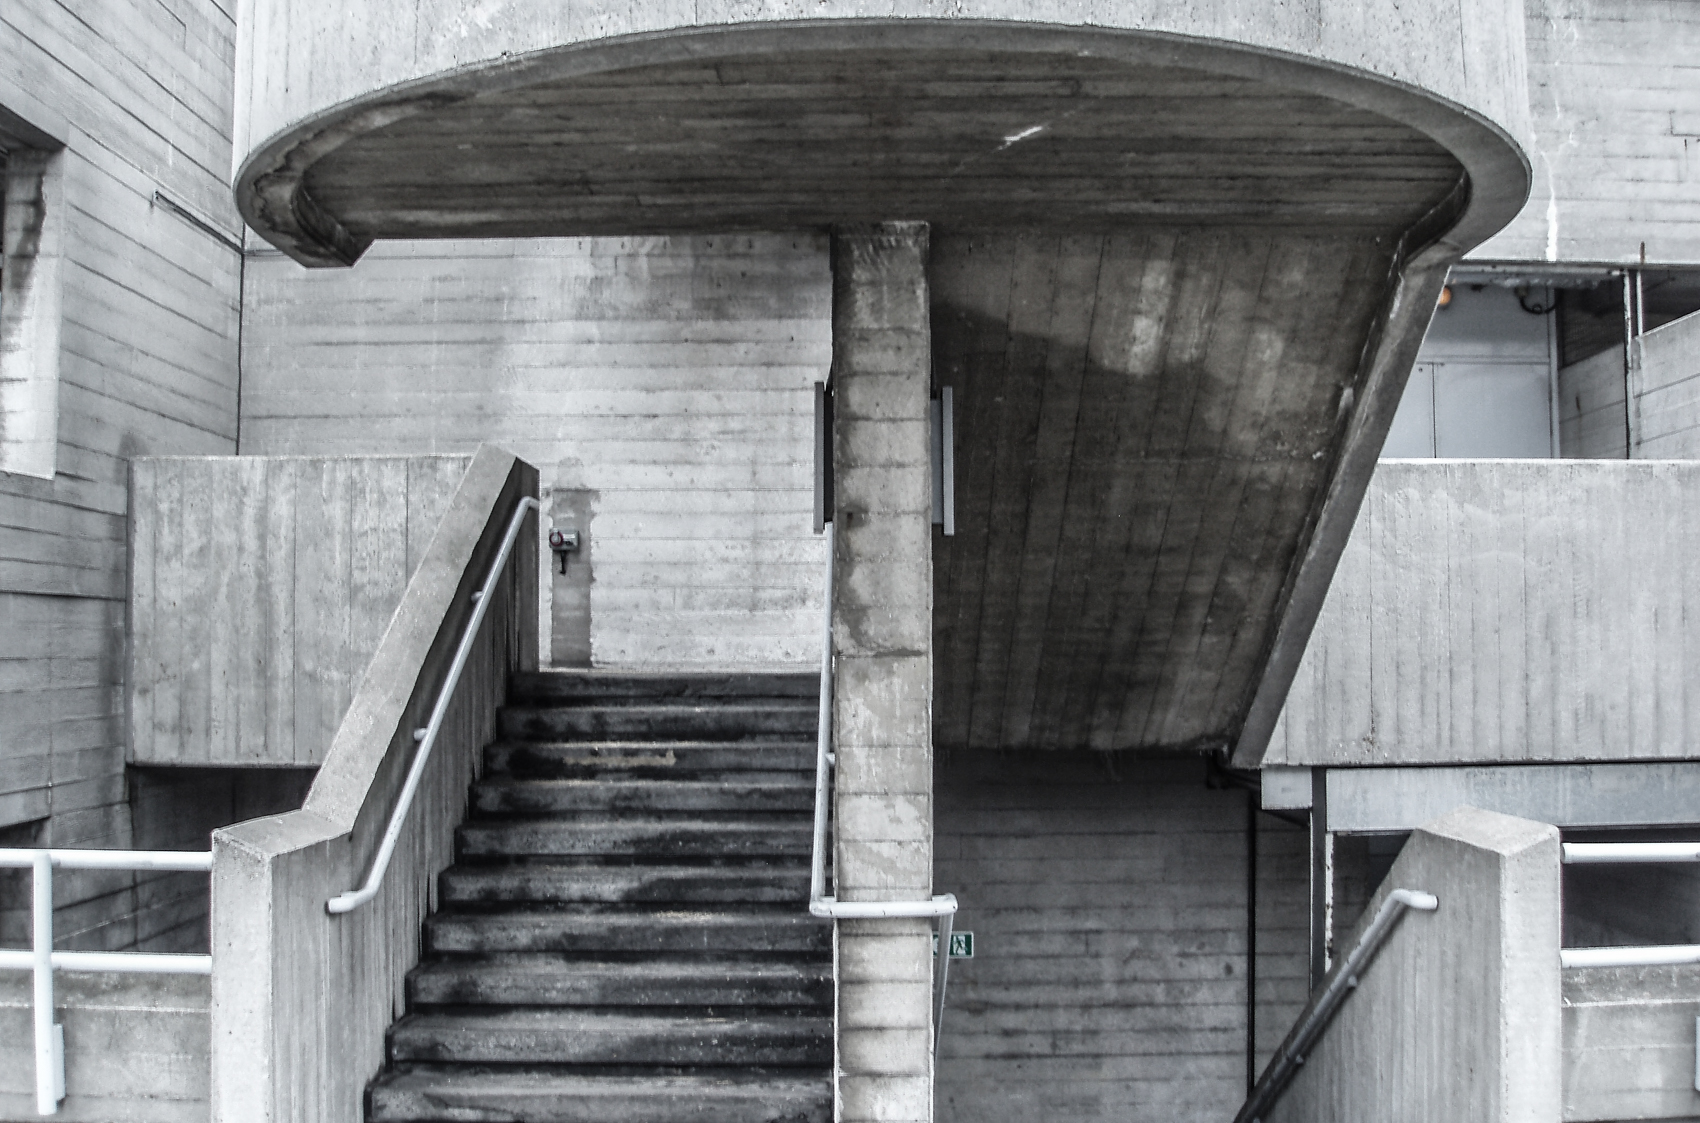 Southbank Centre - Queen Elizabeth Hall stairway, London